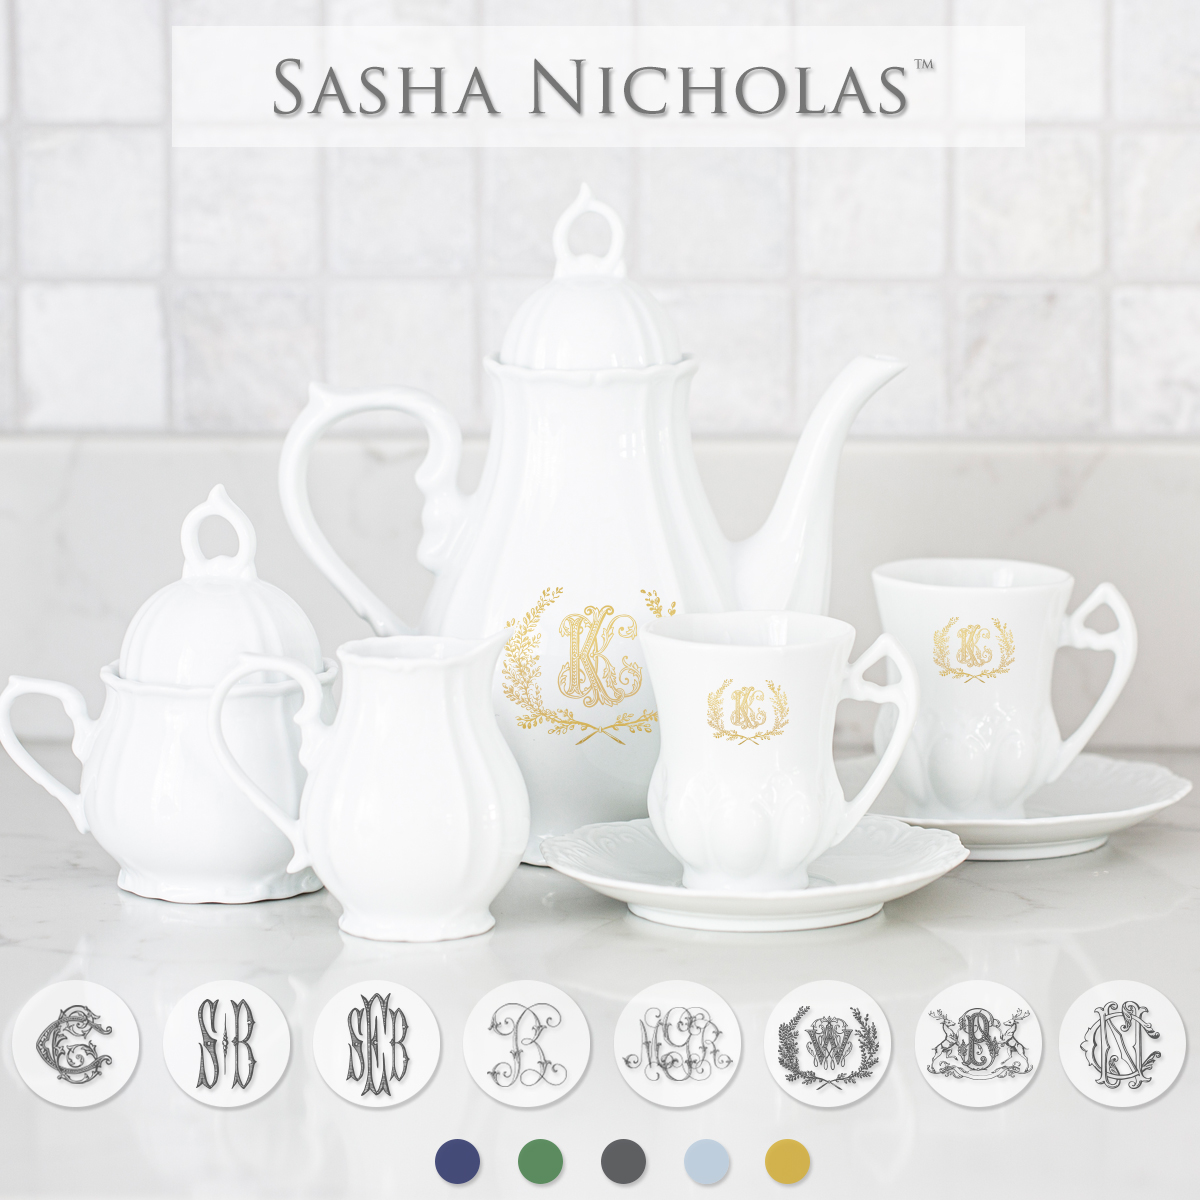 Sasha Nicholas Child's Tea Set